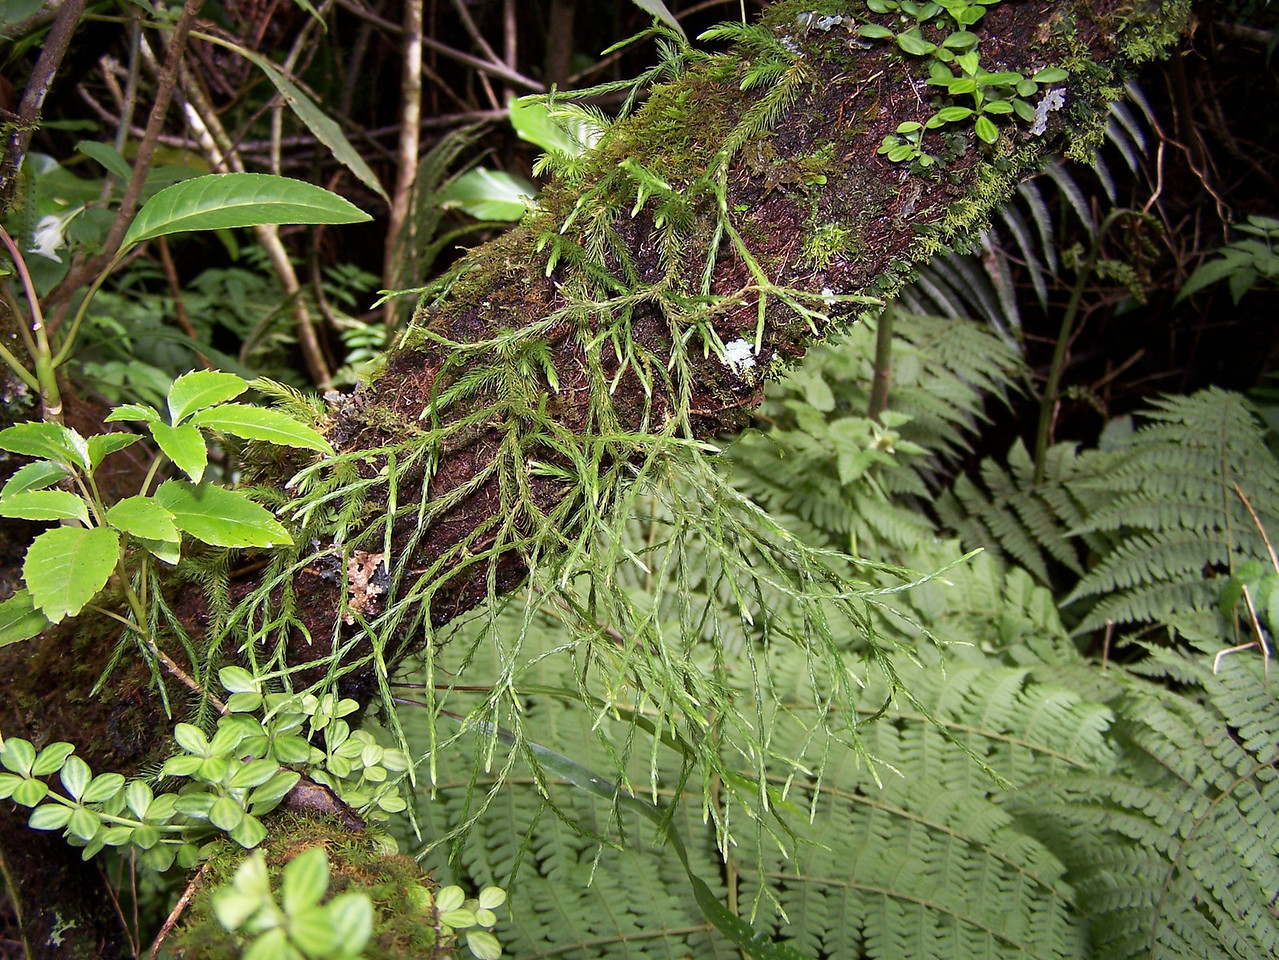 "Huperzia filiformis (Molokai) This image is licensed under the Creative Commons Attribution-NonCommercial 3.0 Unported license.  You may share and adapt this work, but only with attribution (""by Hank L. Oppenheimer"") and only for non-commercial purposes unless permission is obtained from the copyright-holder (contact webmaster@hear.org)."